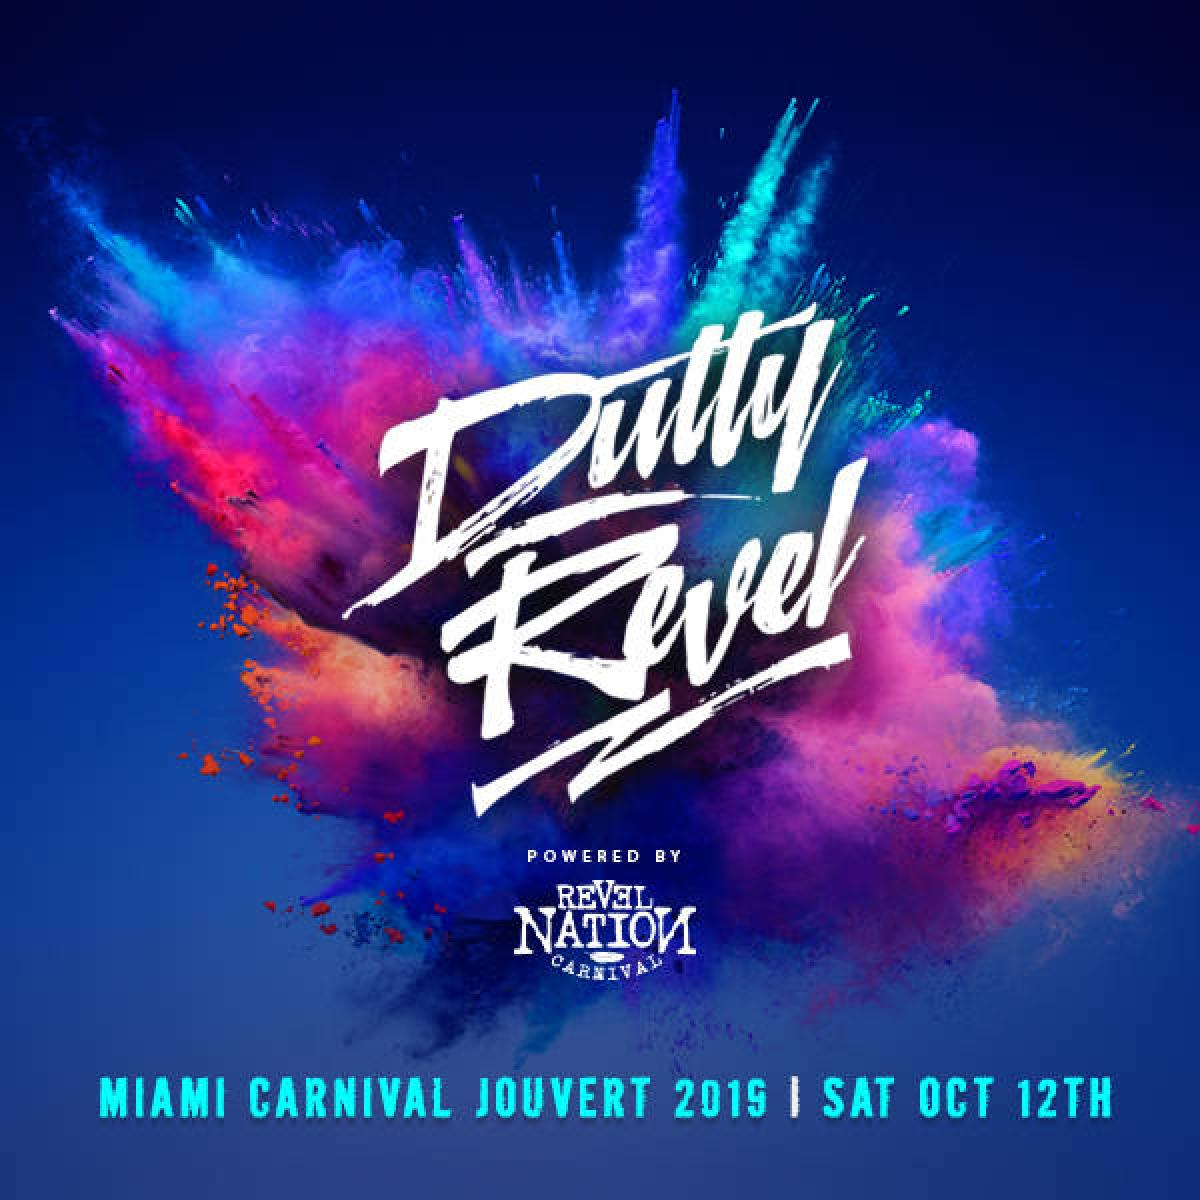 Dutty Revel flyer or graphic.